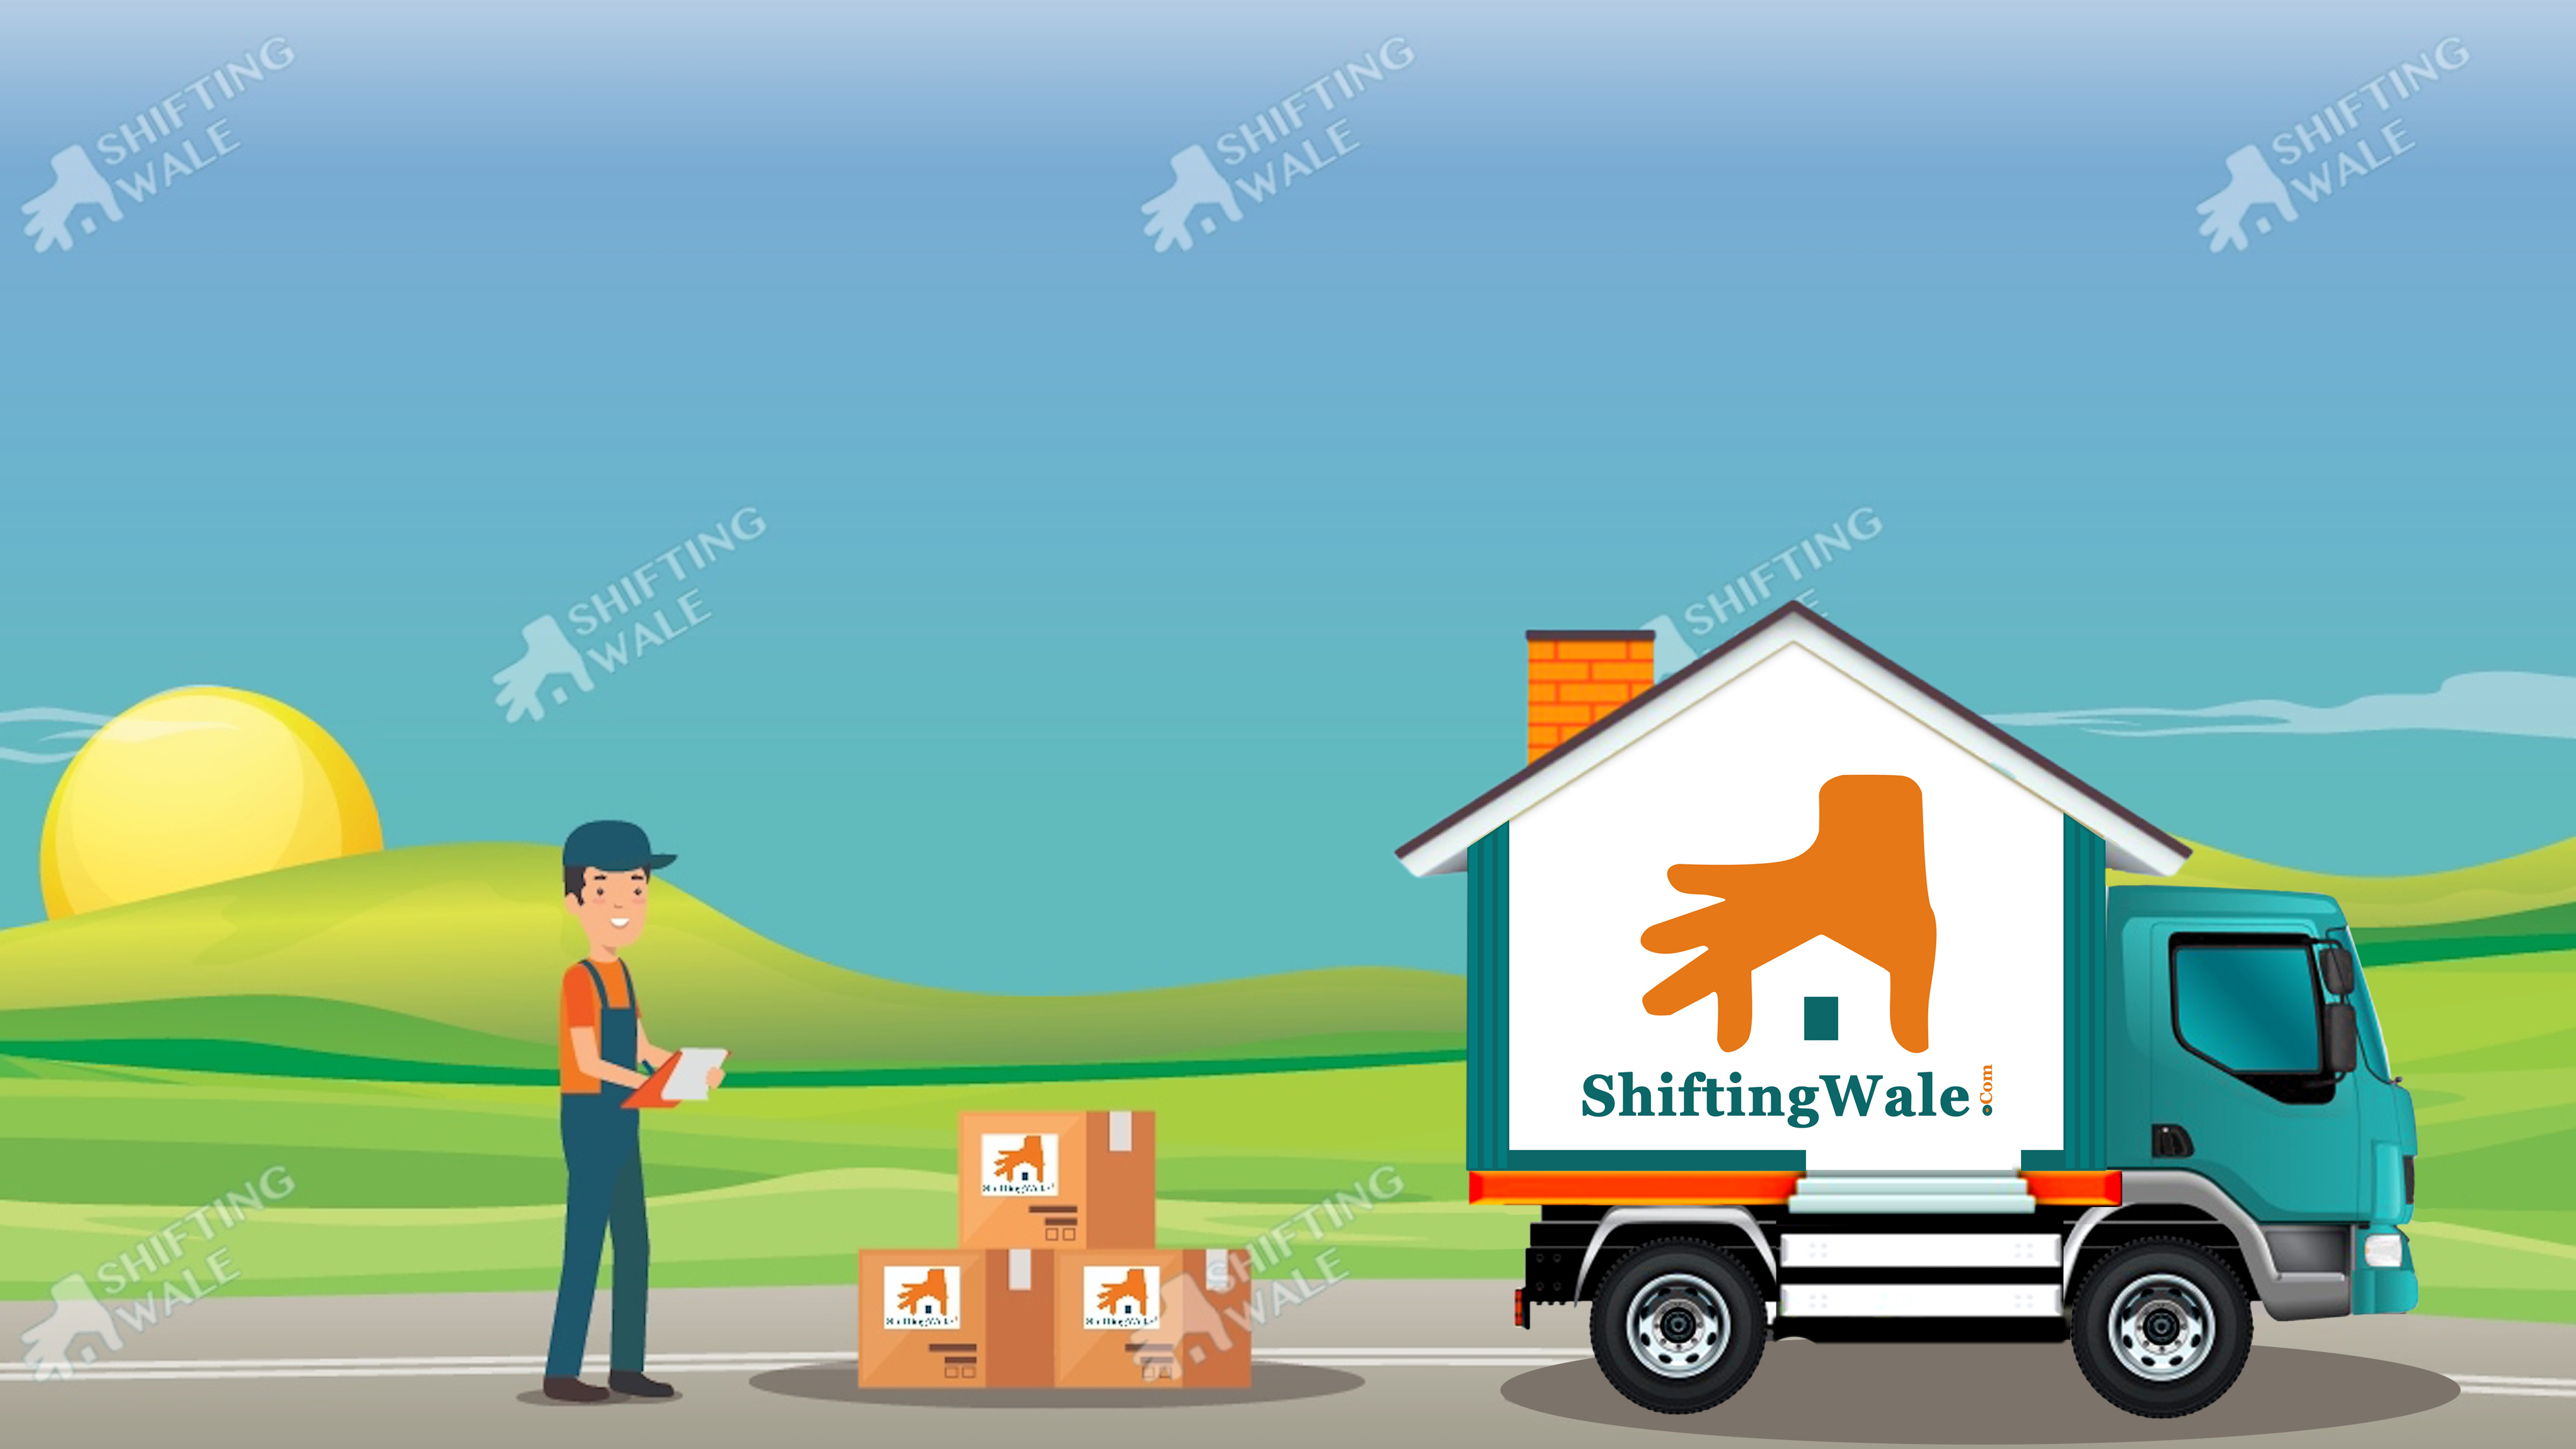 Need Packers and Movers for Household Goods Car from Delhi Gurugram Noida Ghaziabad to Amritsar Jalandhar Ludhiana